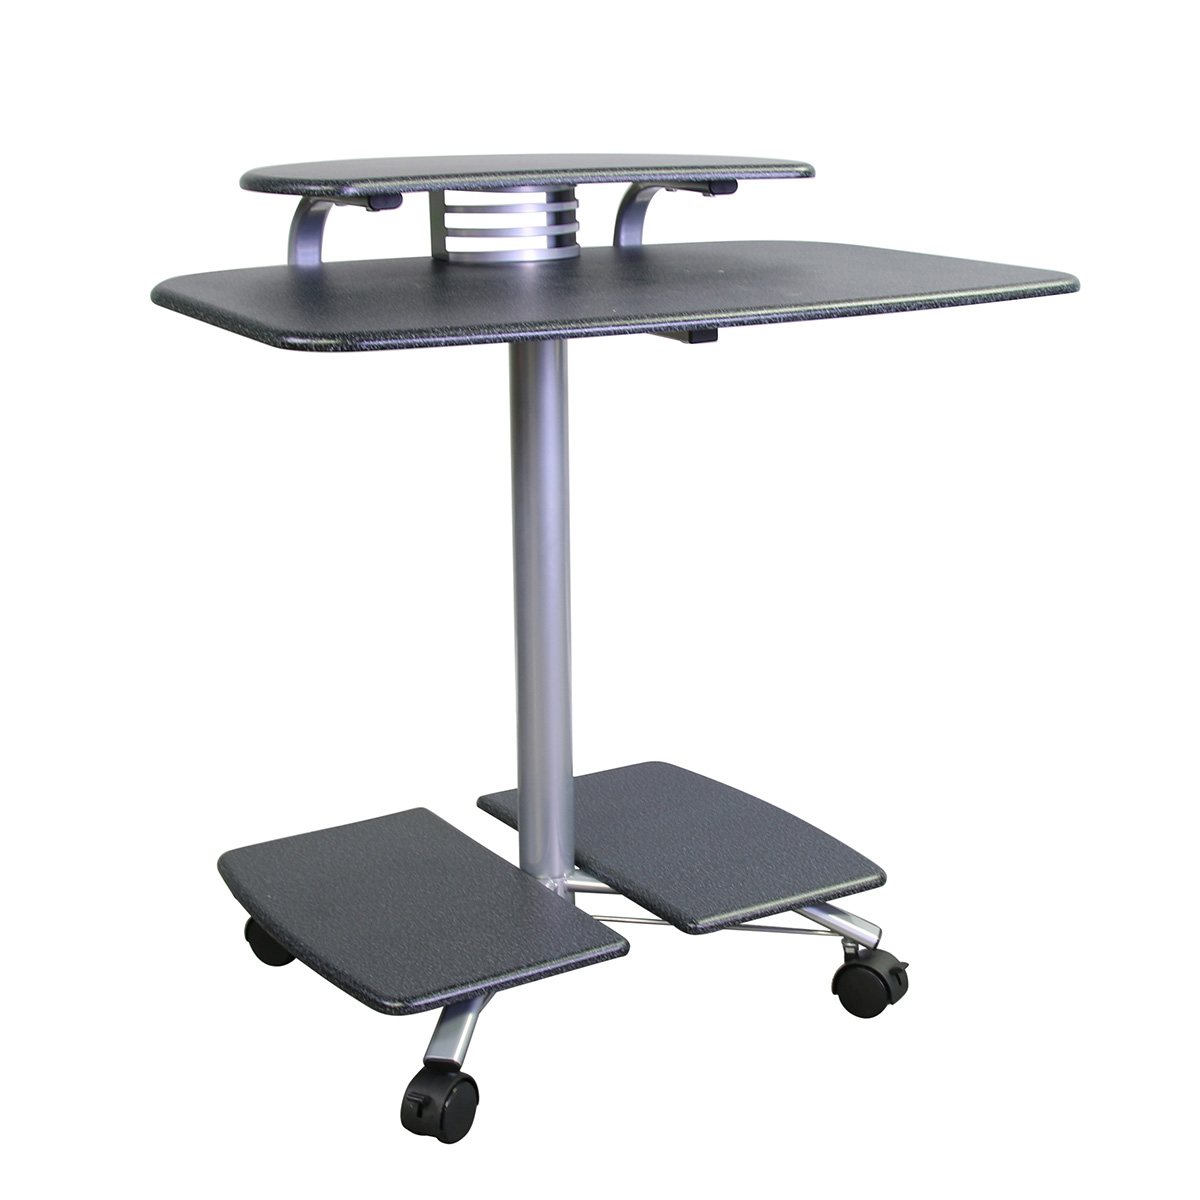 MCT-948A Mobile Compact PC Table